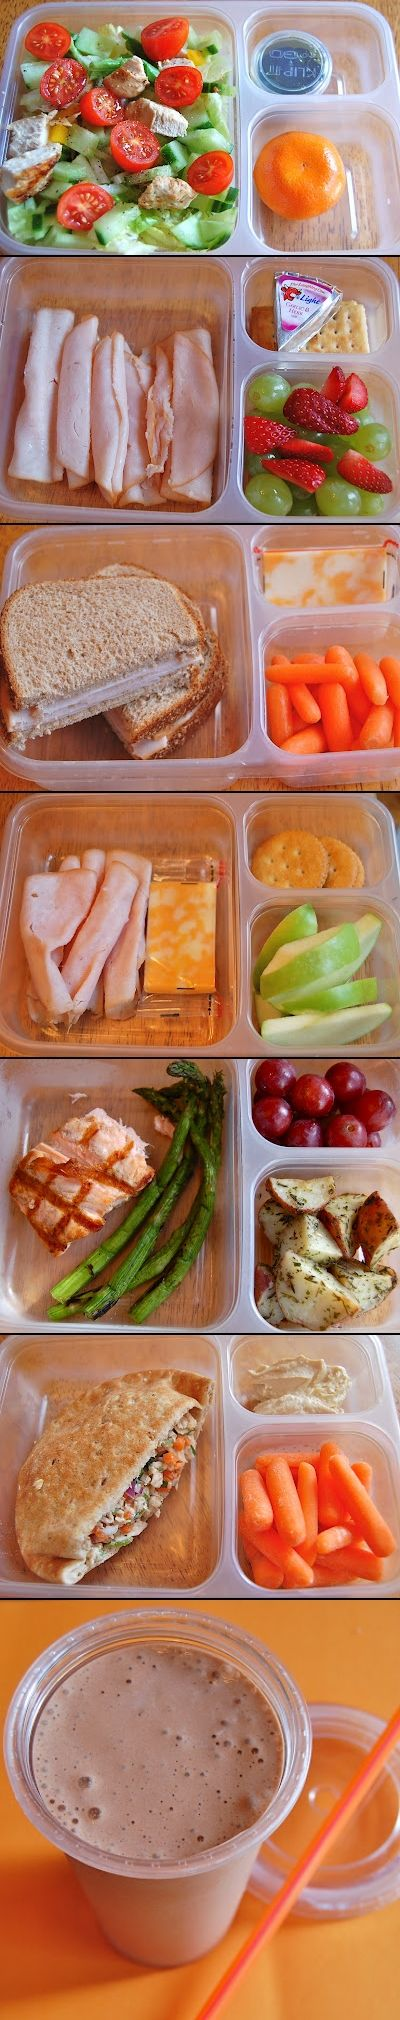 Ideas for packing a delicious, healthy lunch.